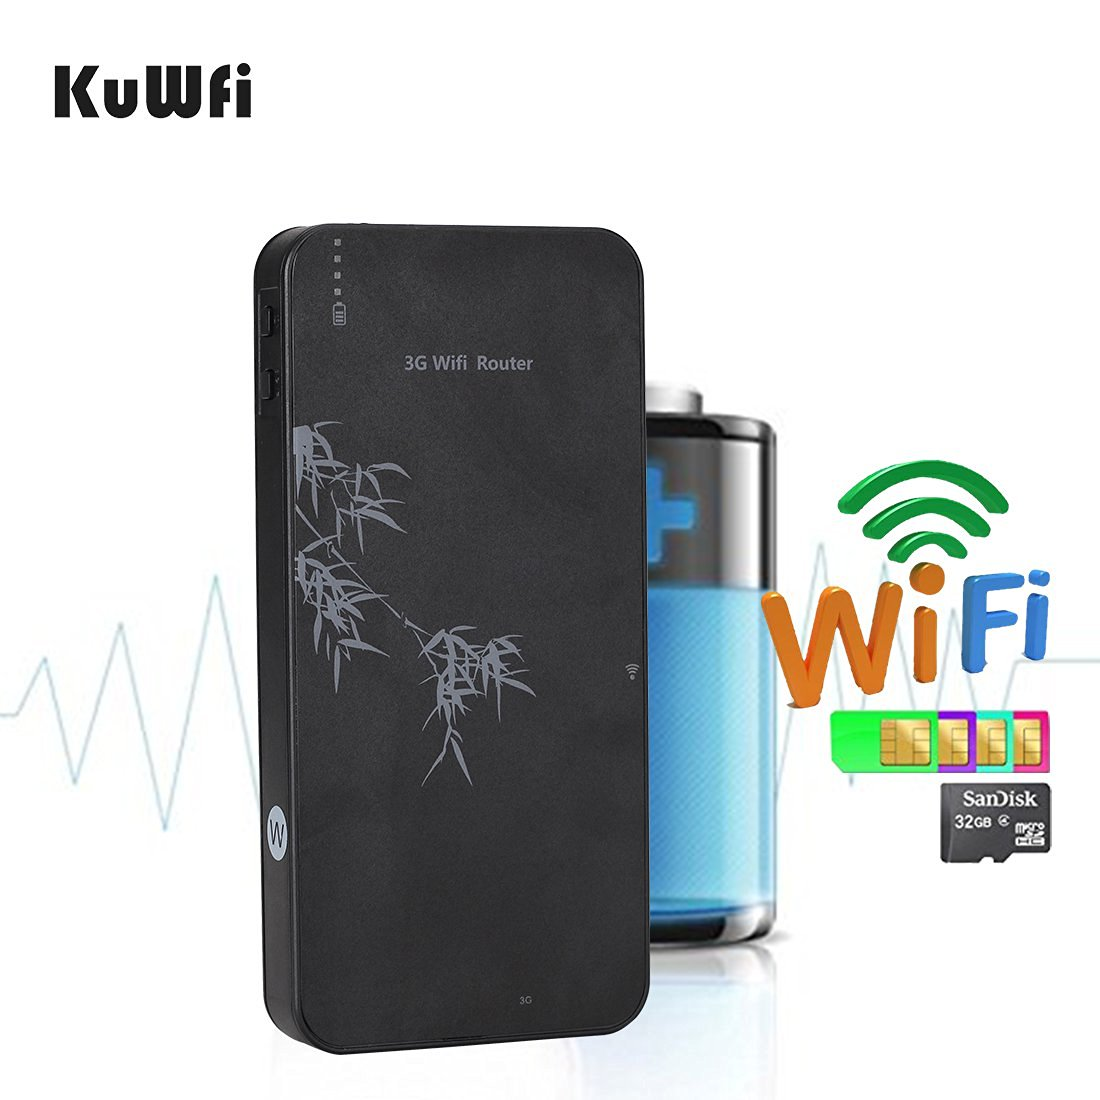 KuWFi Smart Moblie Power Bank 3G WIFI Router Mobile wifi Hospot Wireless Router RJ45 port with SIM Card slot Support WCDMA 2100Mhz Router With TF Port /RJ45 Lan port (not inclued SIM Card)